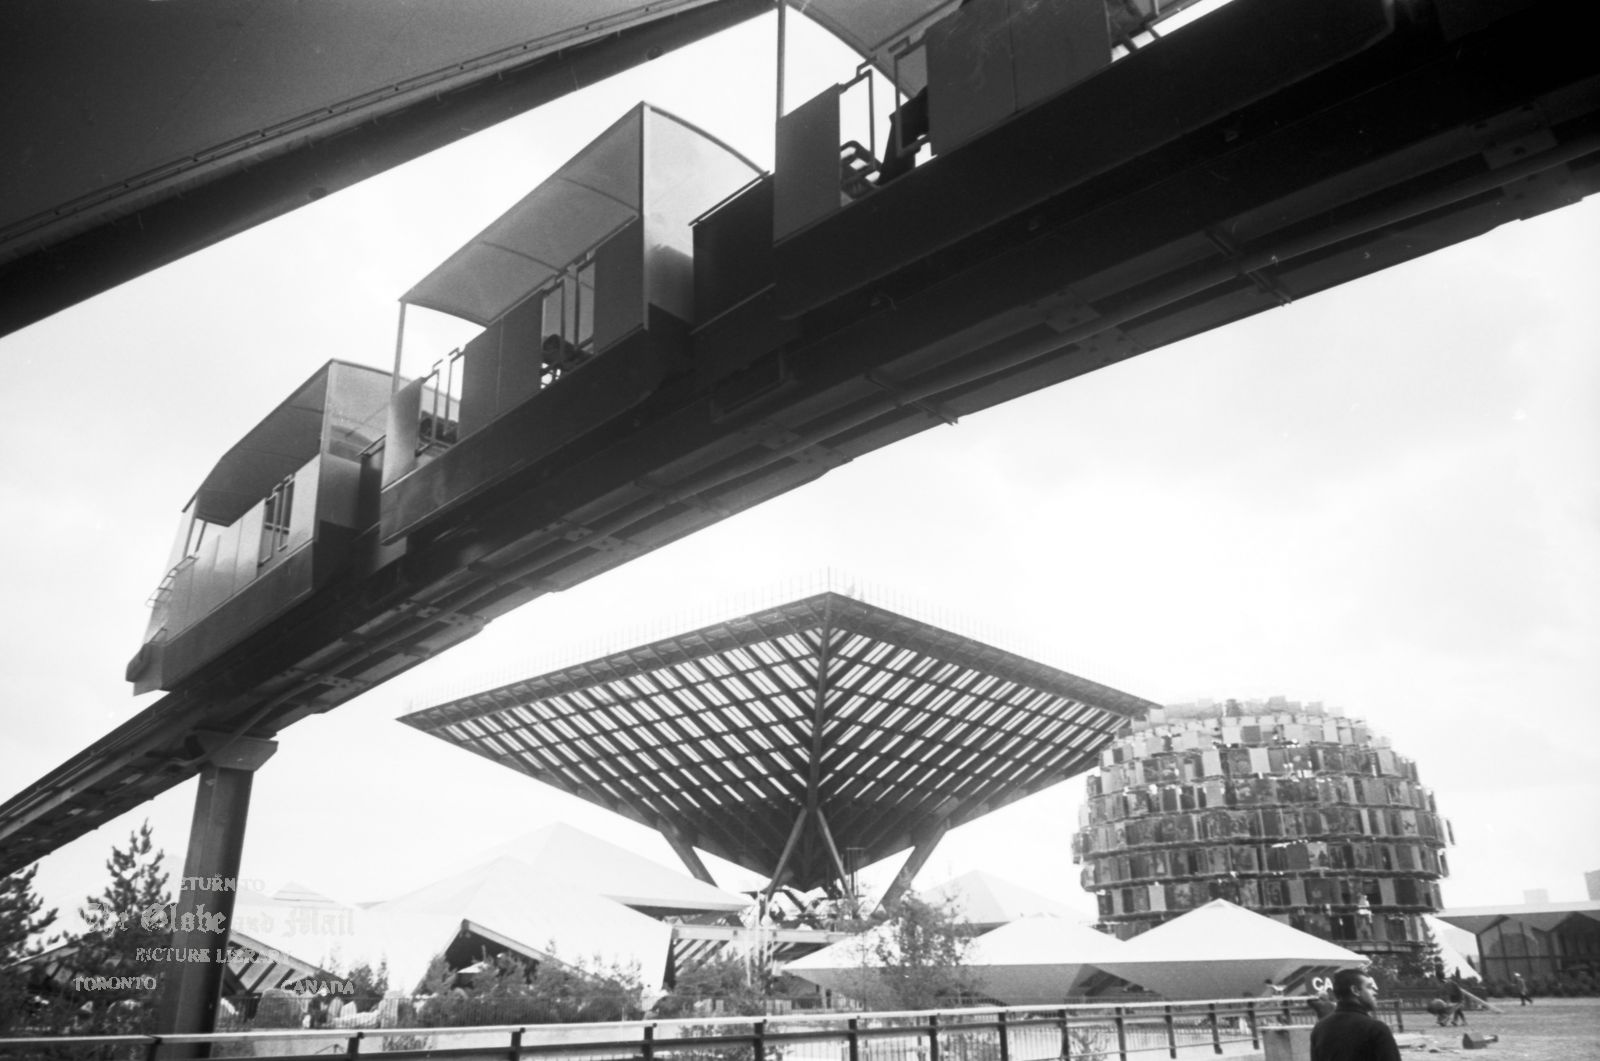 MONTREAL -- EXPO 67 -- View of the fairgrounds prior to opening, April 24, 1967. Exterior view of the Canadian Pavilion (a large inverted pyramid called the Katimavik, which is the Inuit word for